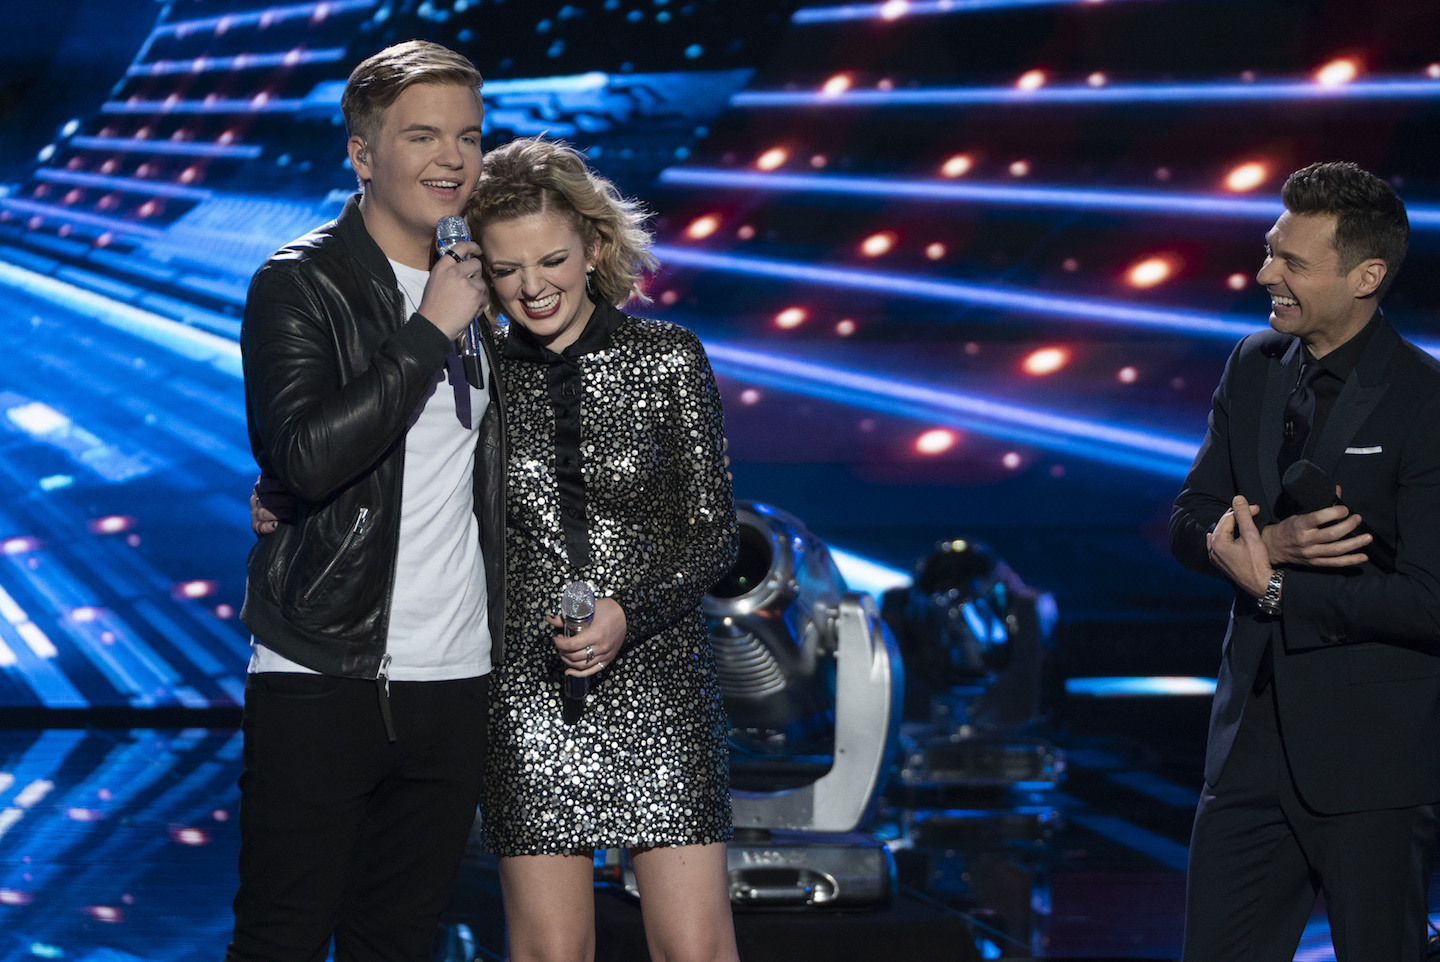 `American Idol`: Following performances by music superstars and legends, including the `American Idol` judges, the winner of season 1 of `American Idol` on ABC was crowned on Monday. Pictured, from left: Caleb Lee Hutchinson, Maddie Poppe and Ryan Seacrest. (ABC photo by Eric McCandless)